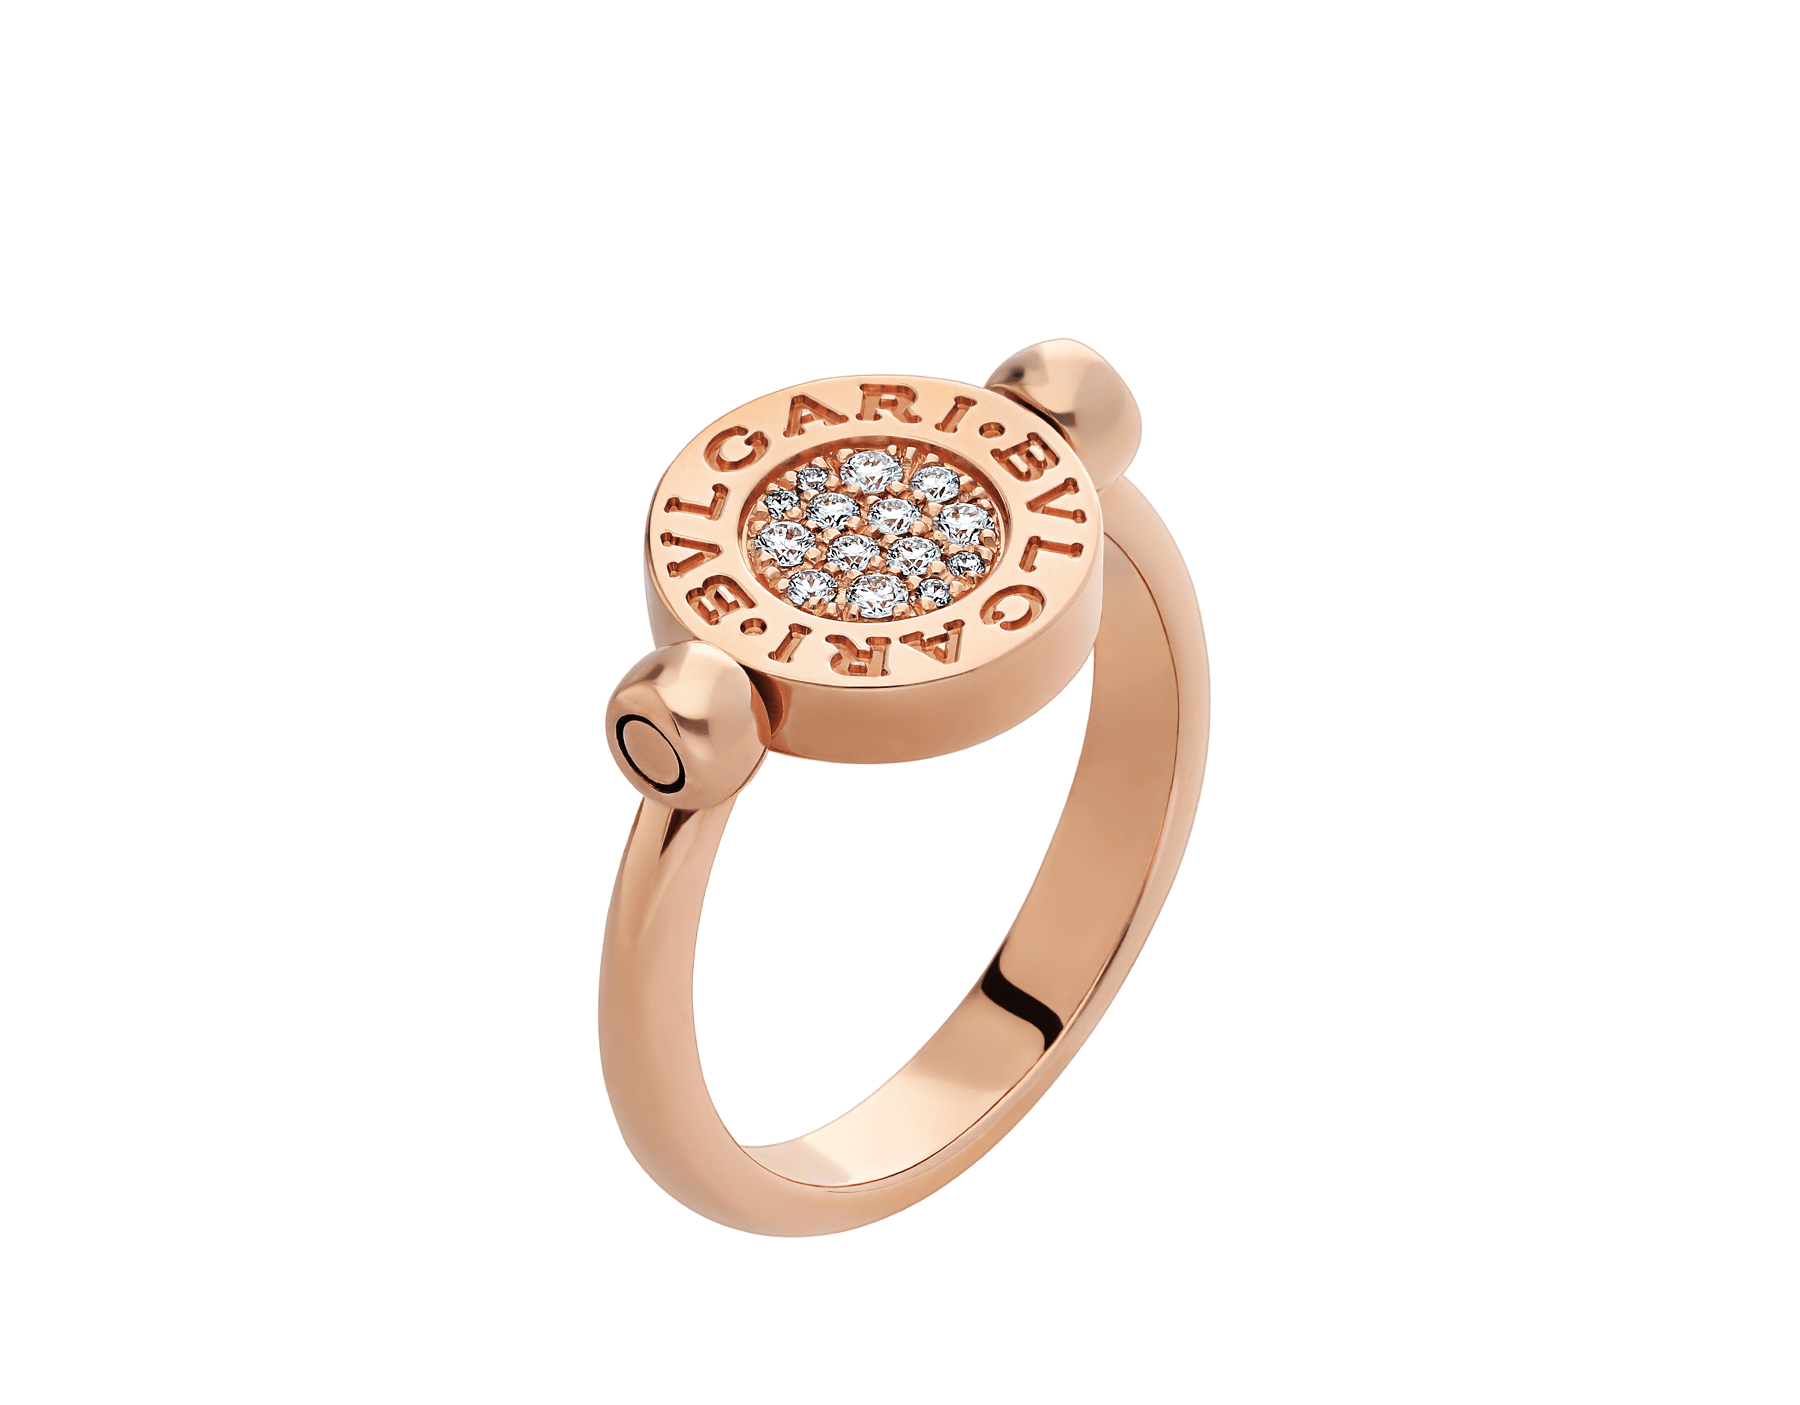 BVLGARI BVLGARI 18 kt rose gold flip ring set with mother-of-pearl and pavé diamonds AN857171 image 1